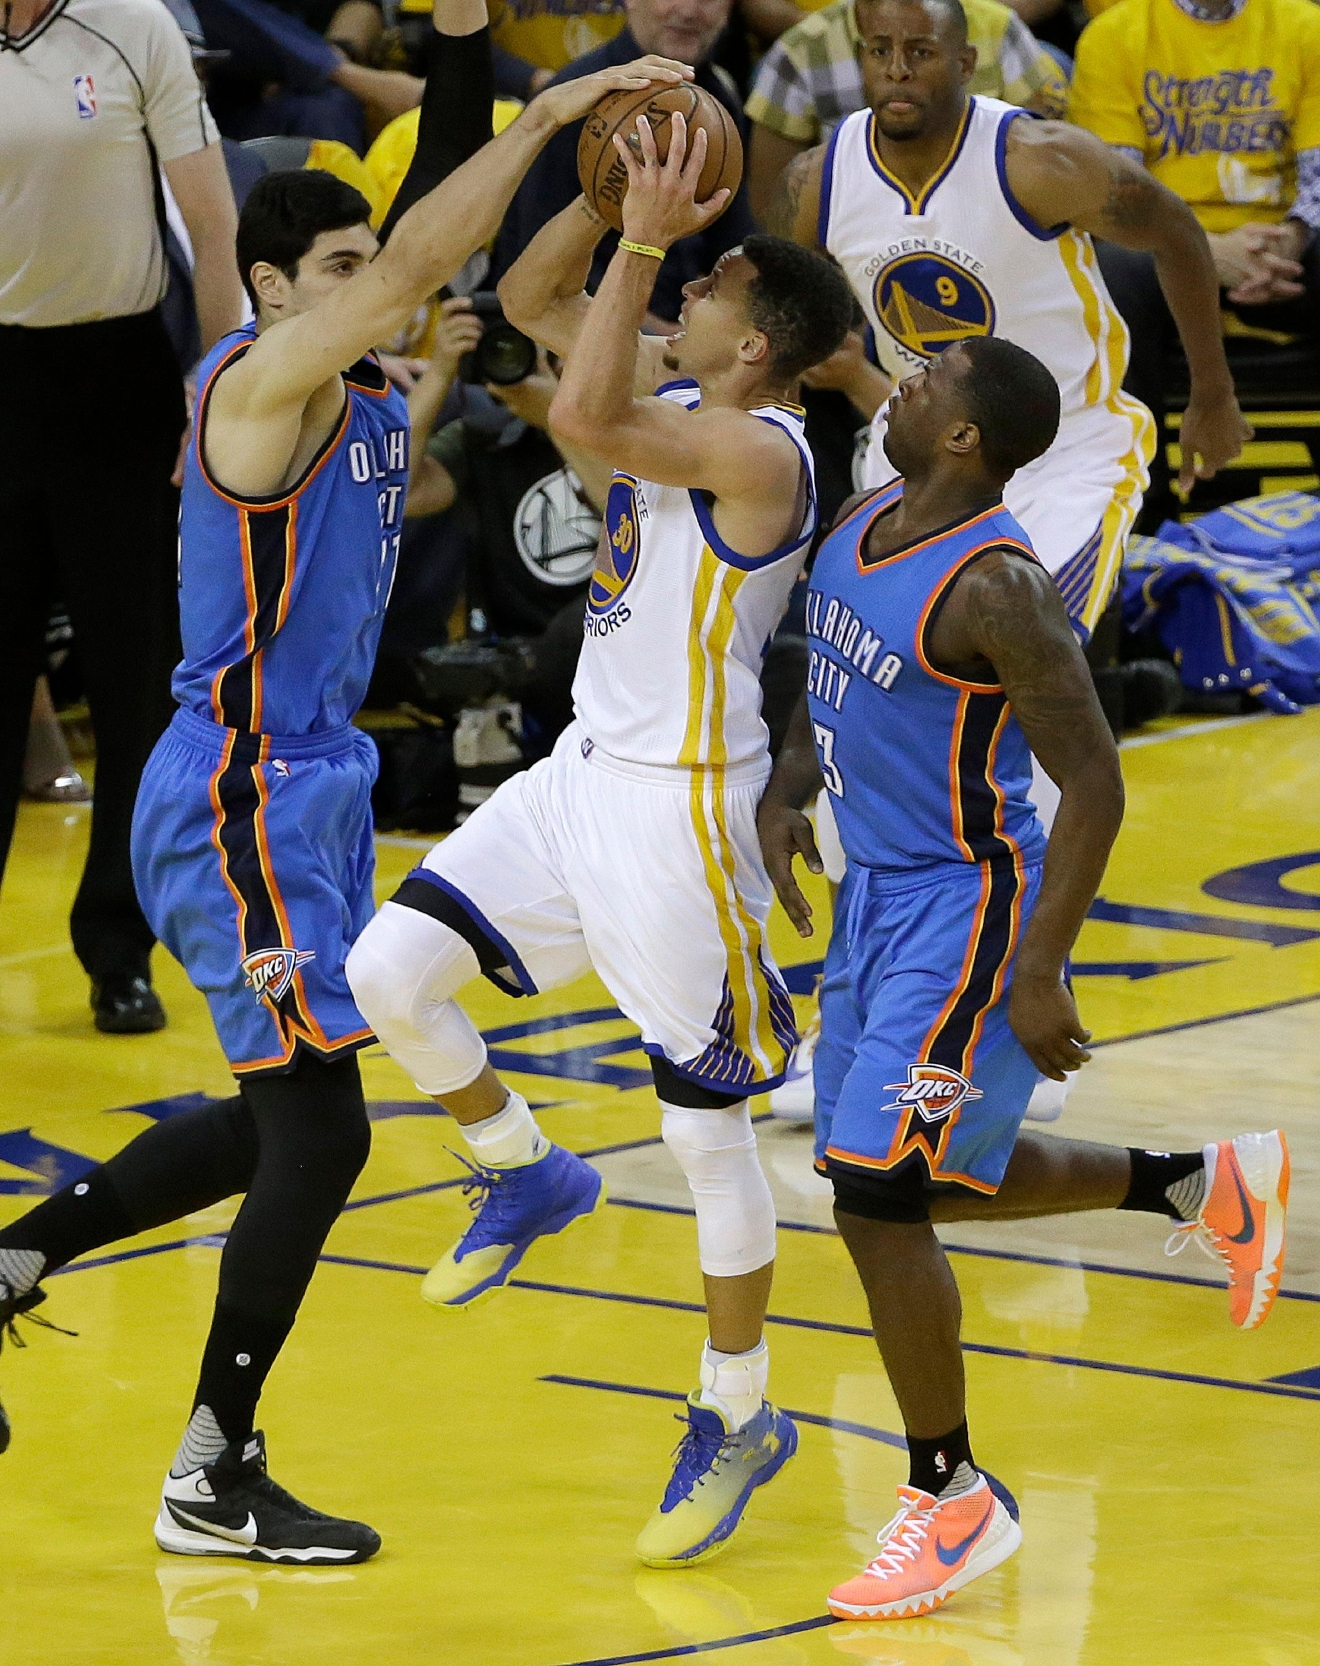 Golden State Warriors guard Stephen Curry, center, shoots between Oklahoma City Thunder center Enes Kanter, left, and guard Dion Waiters during the first half of Game 2 of the NBA basketball Western Conference finals in Oakland, Calif., Wednesday, May 18, 2016. (AP Photo/Jeff Chiu)